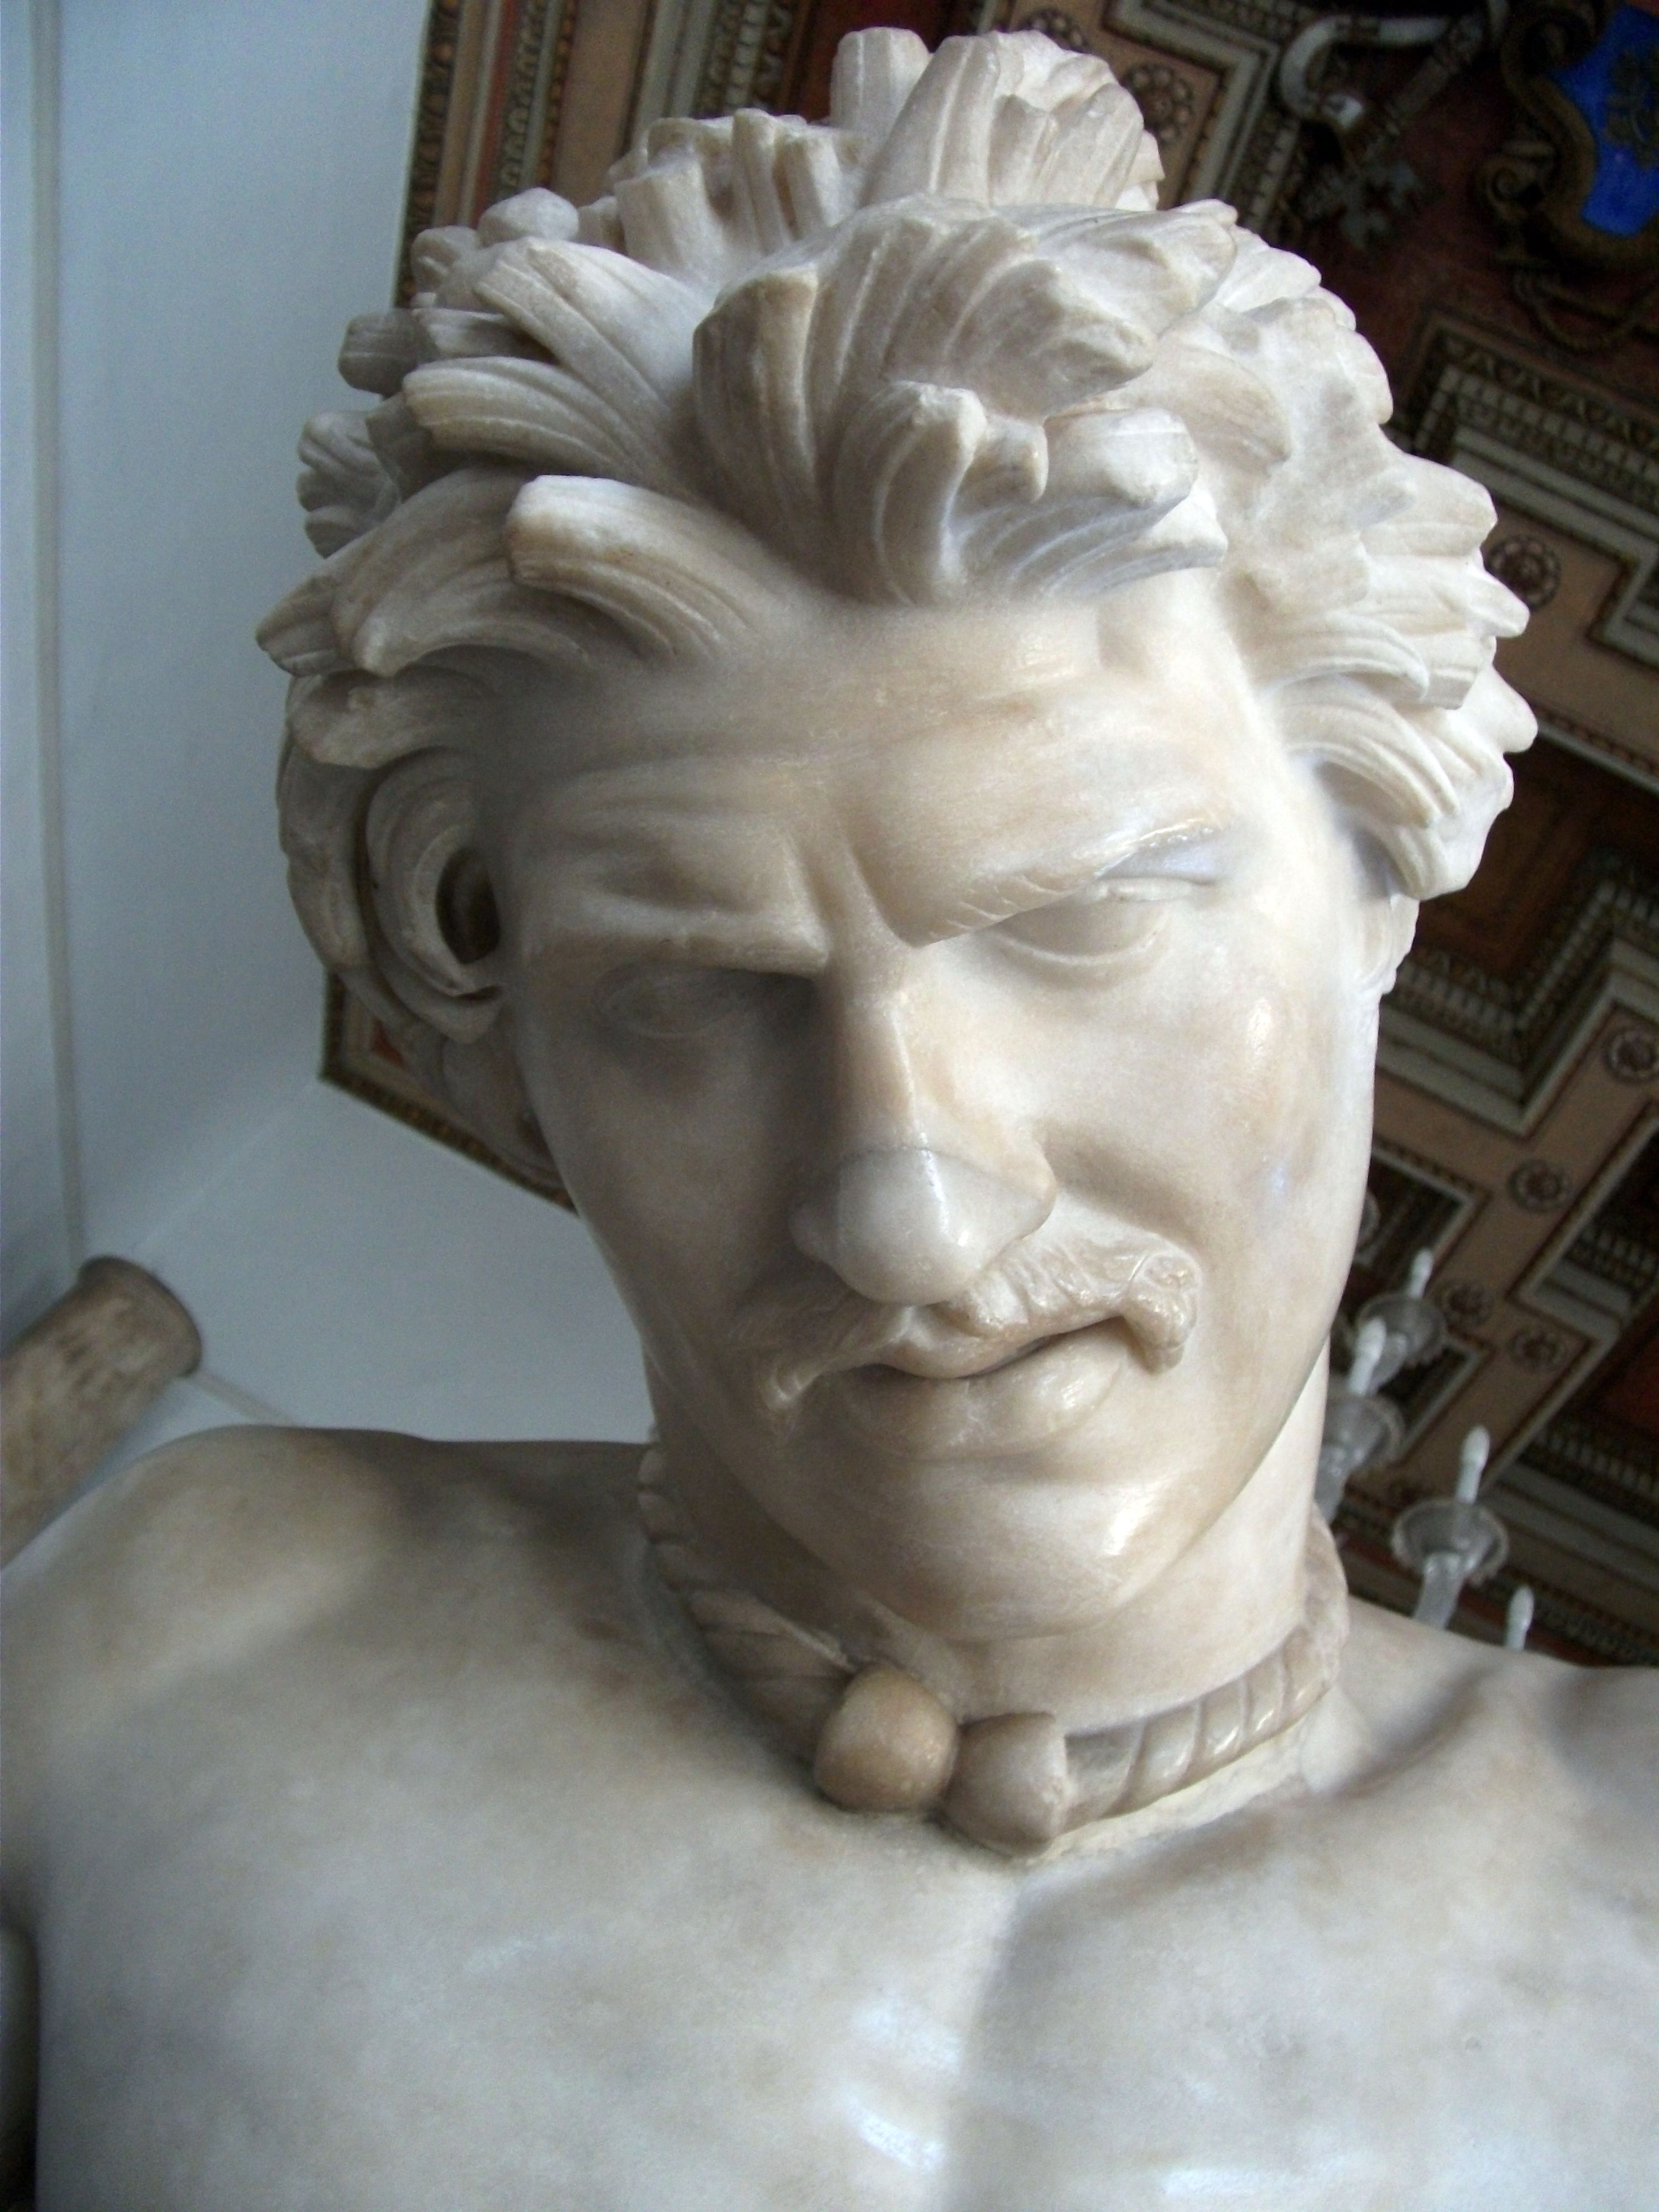 see the source image | statues | sculpture, art, ancient